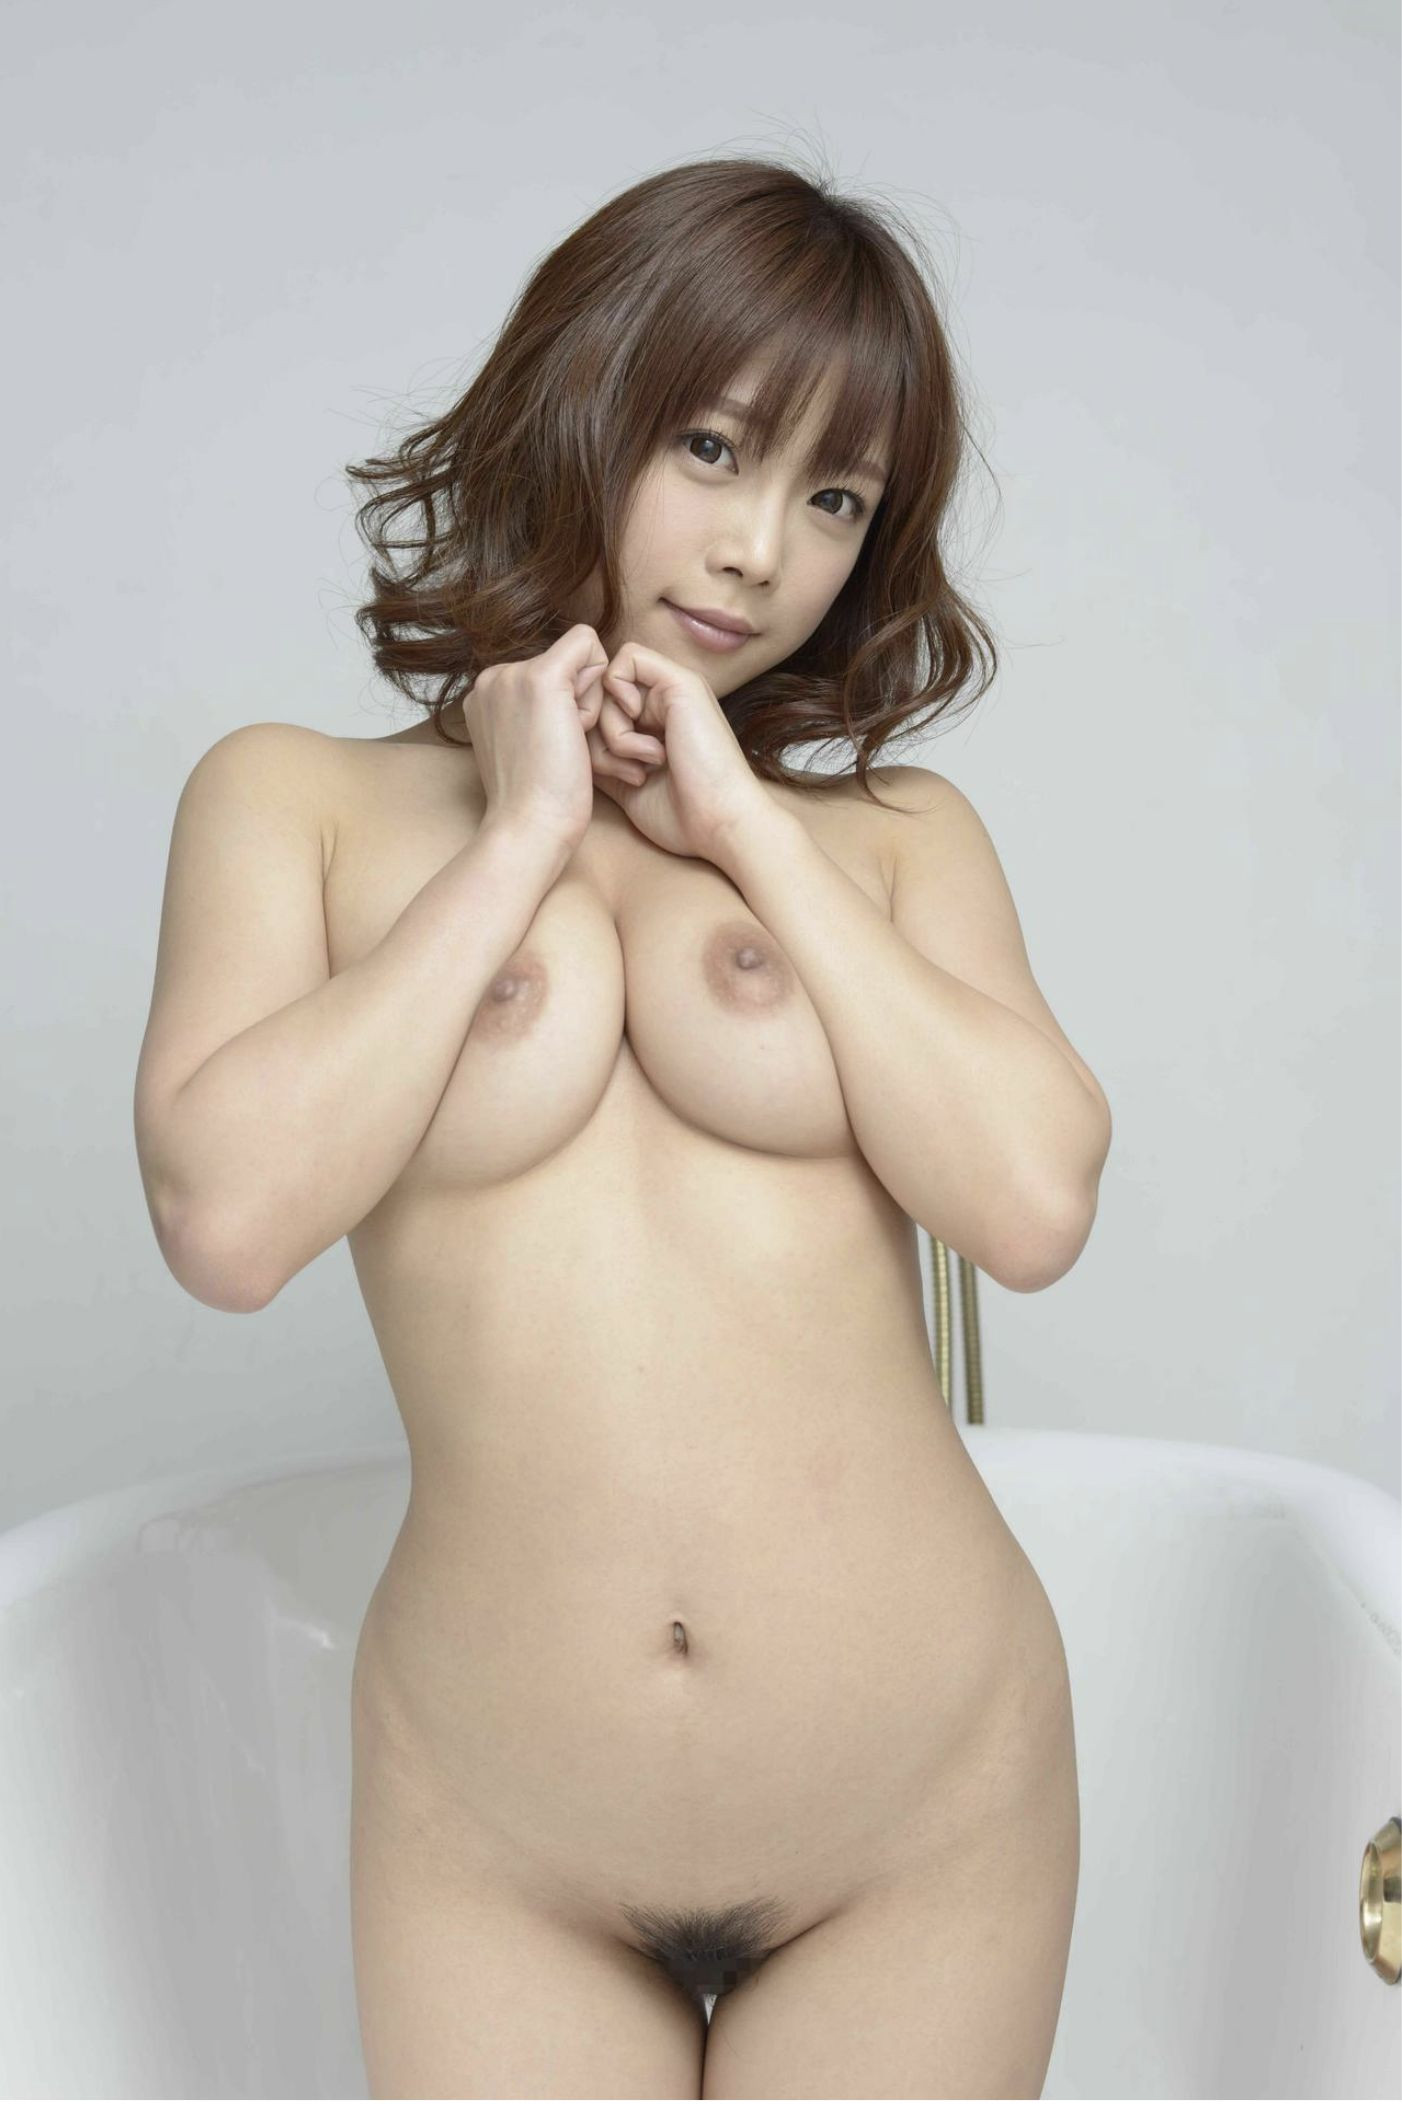 SOFT ON DEMAND GRAVURE COLLECTION 紗倉まな01 photo 064